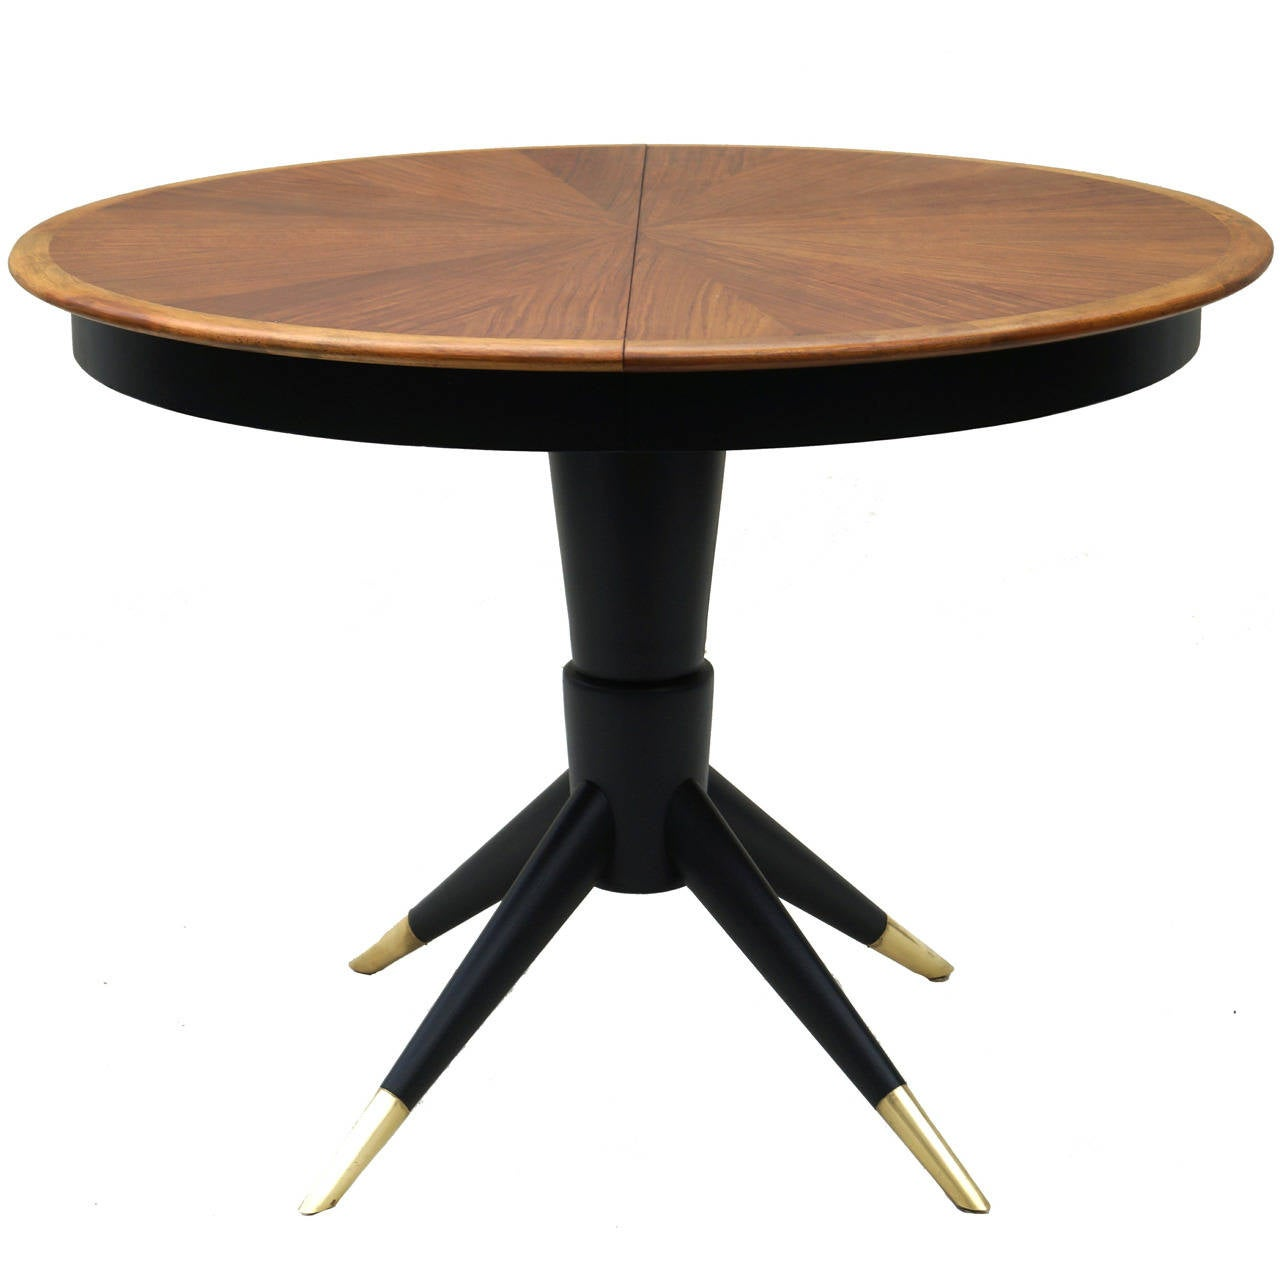 Small Extension Dining Tables Extension Dining Table For Small To Large Space In The